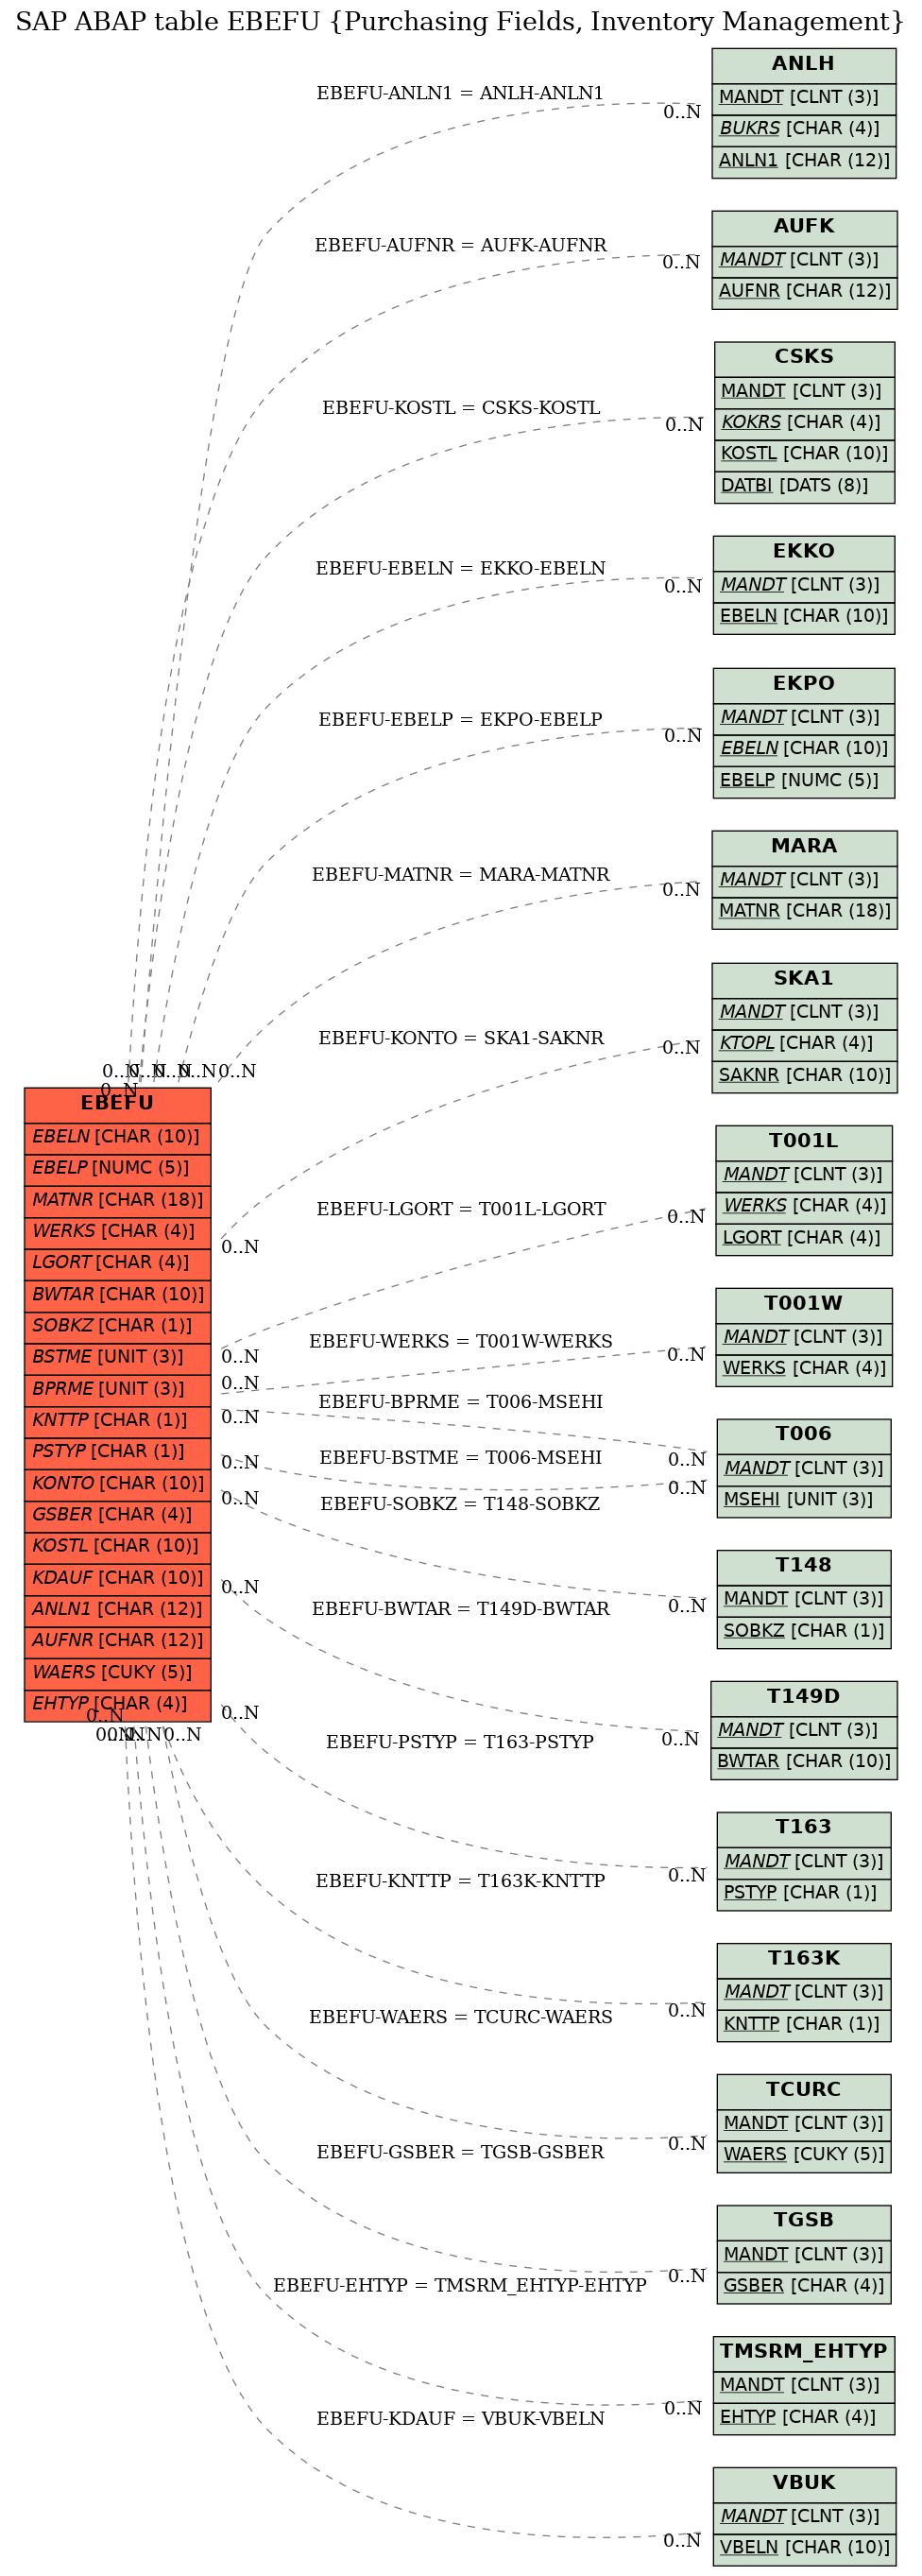 E-R Diagram for table EBEFU (Purchasing Fields, Inventory Management)